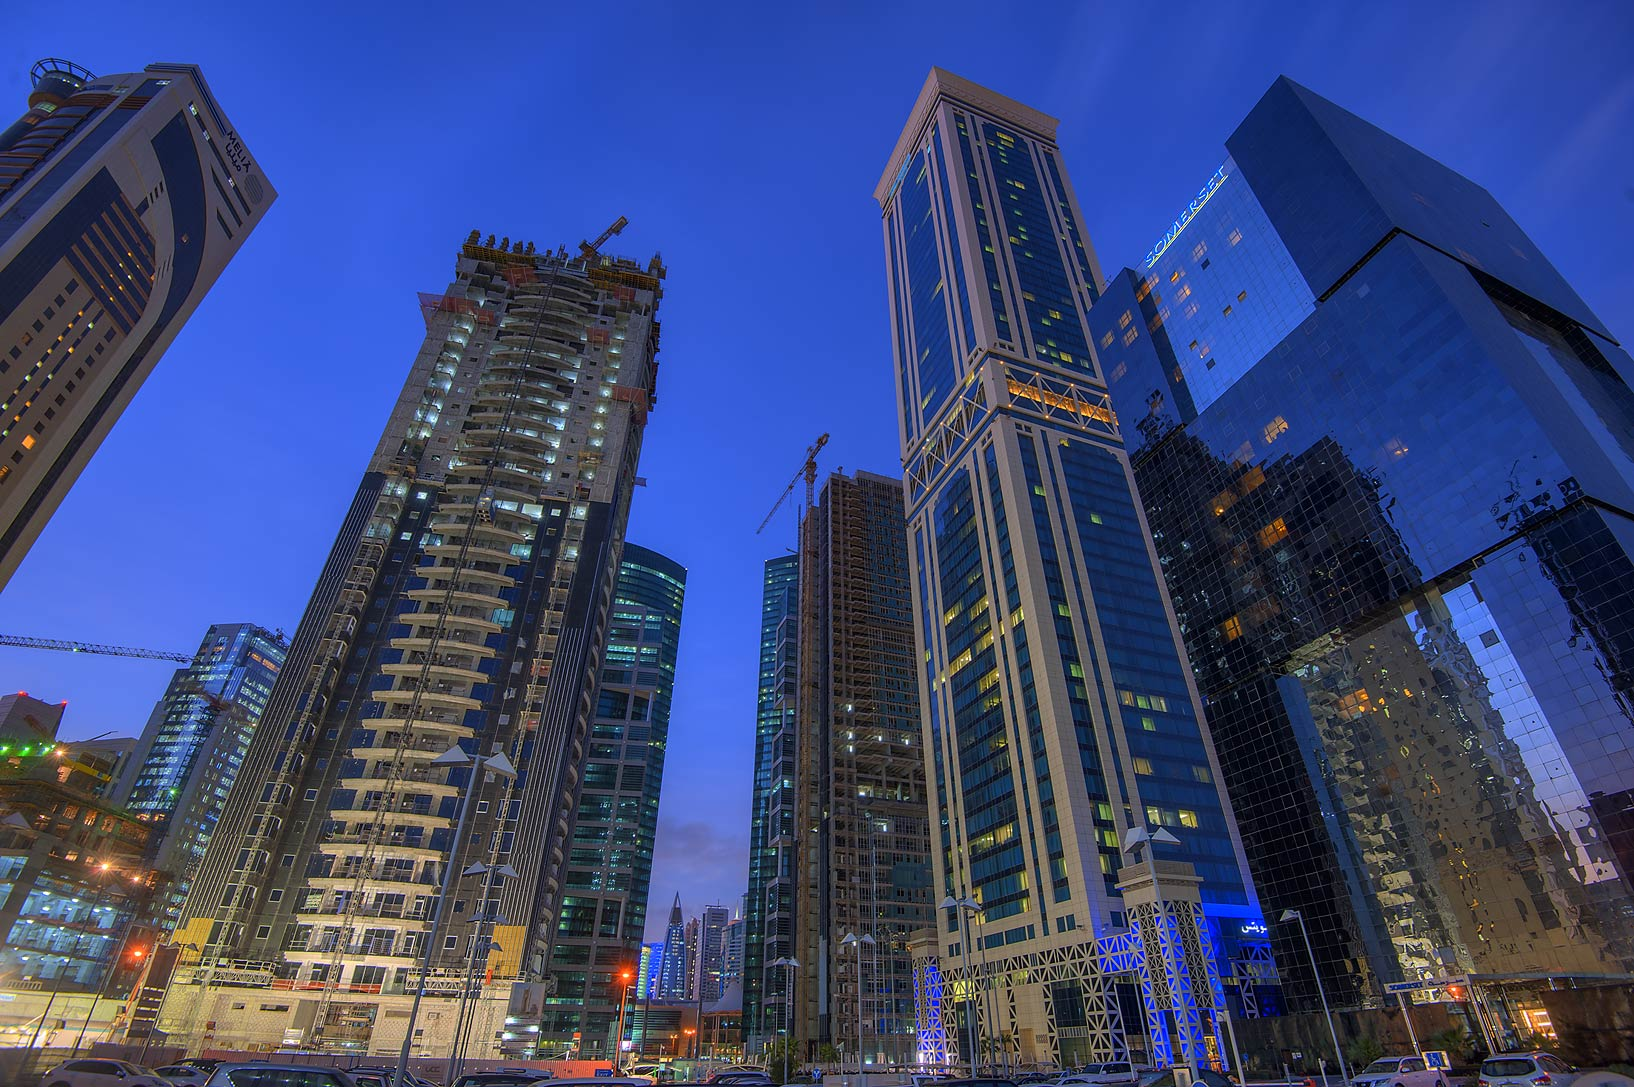 Kempinski and Somerset hotels in West Bay. Doha, Qatar